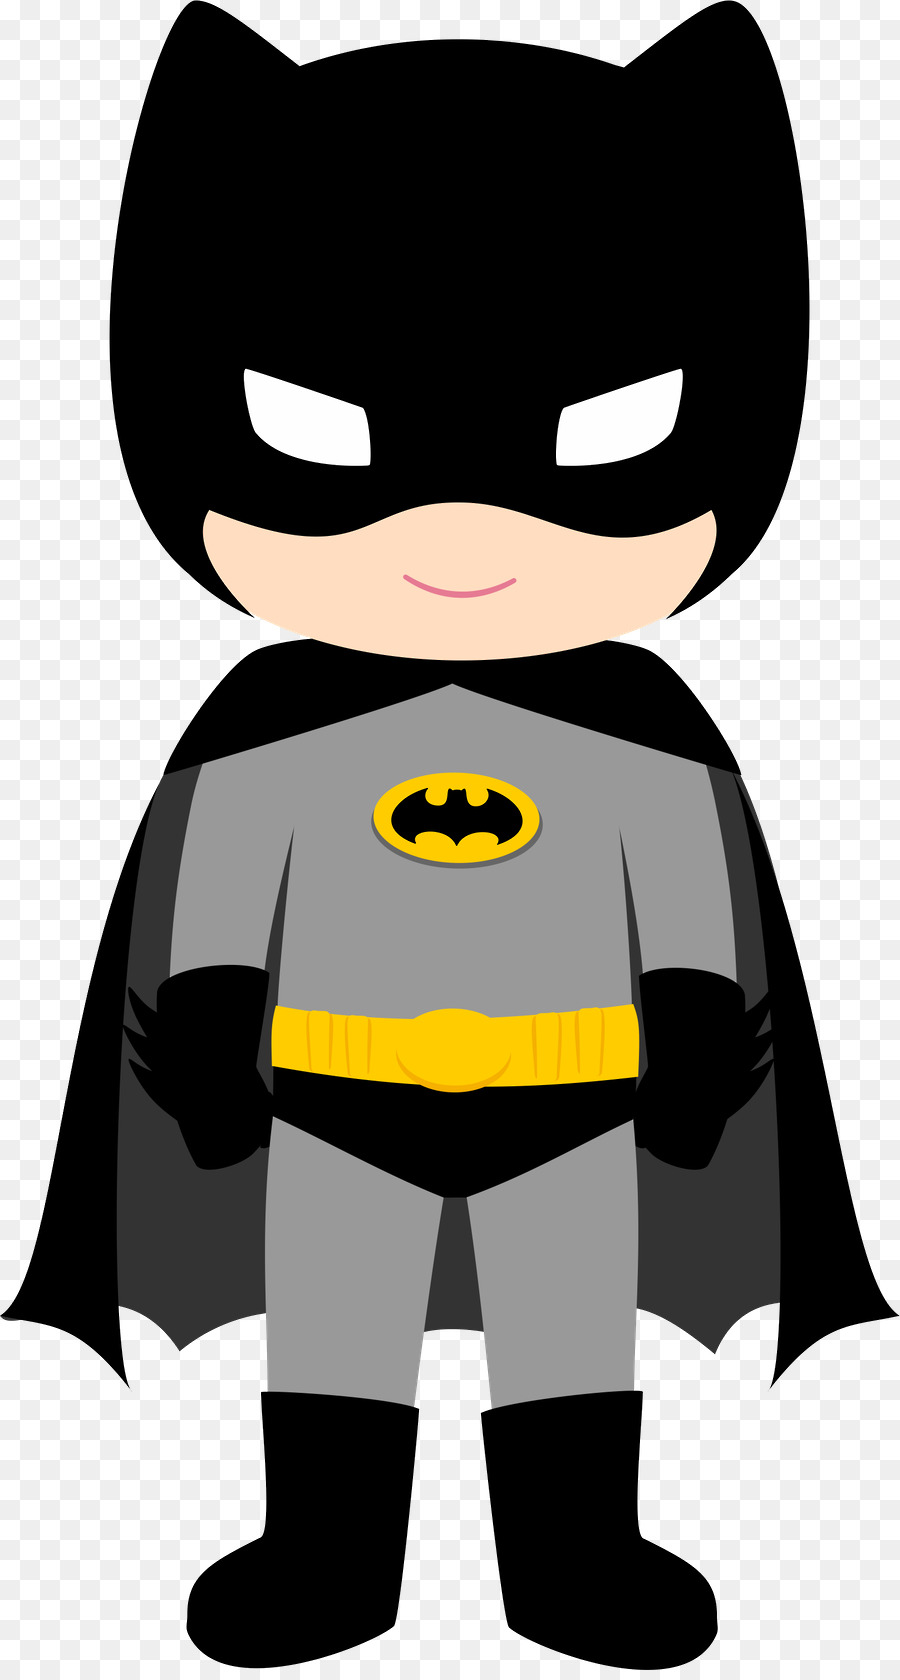 Batman Robin Superhero Clip art - batman